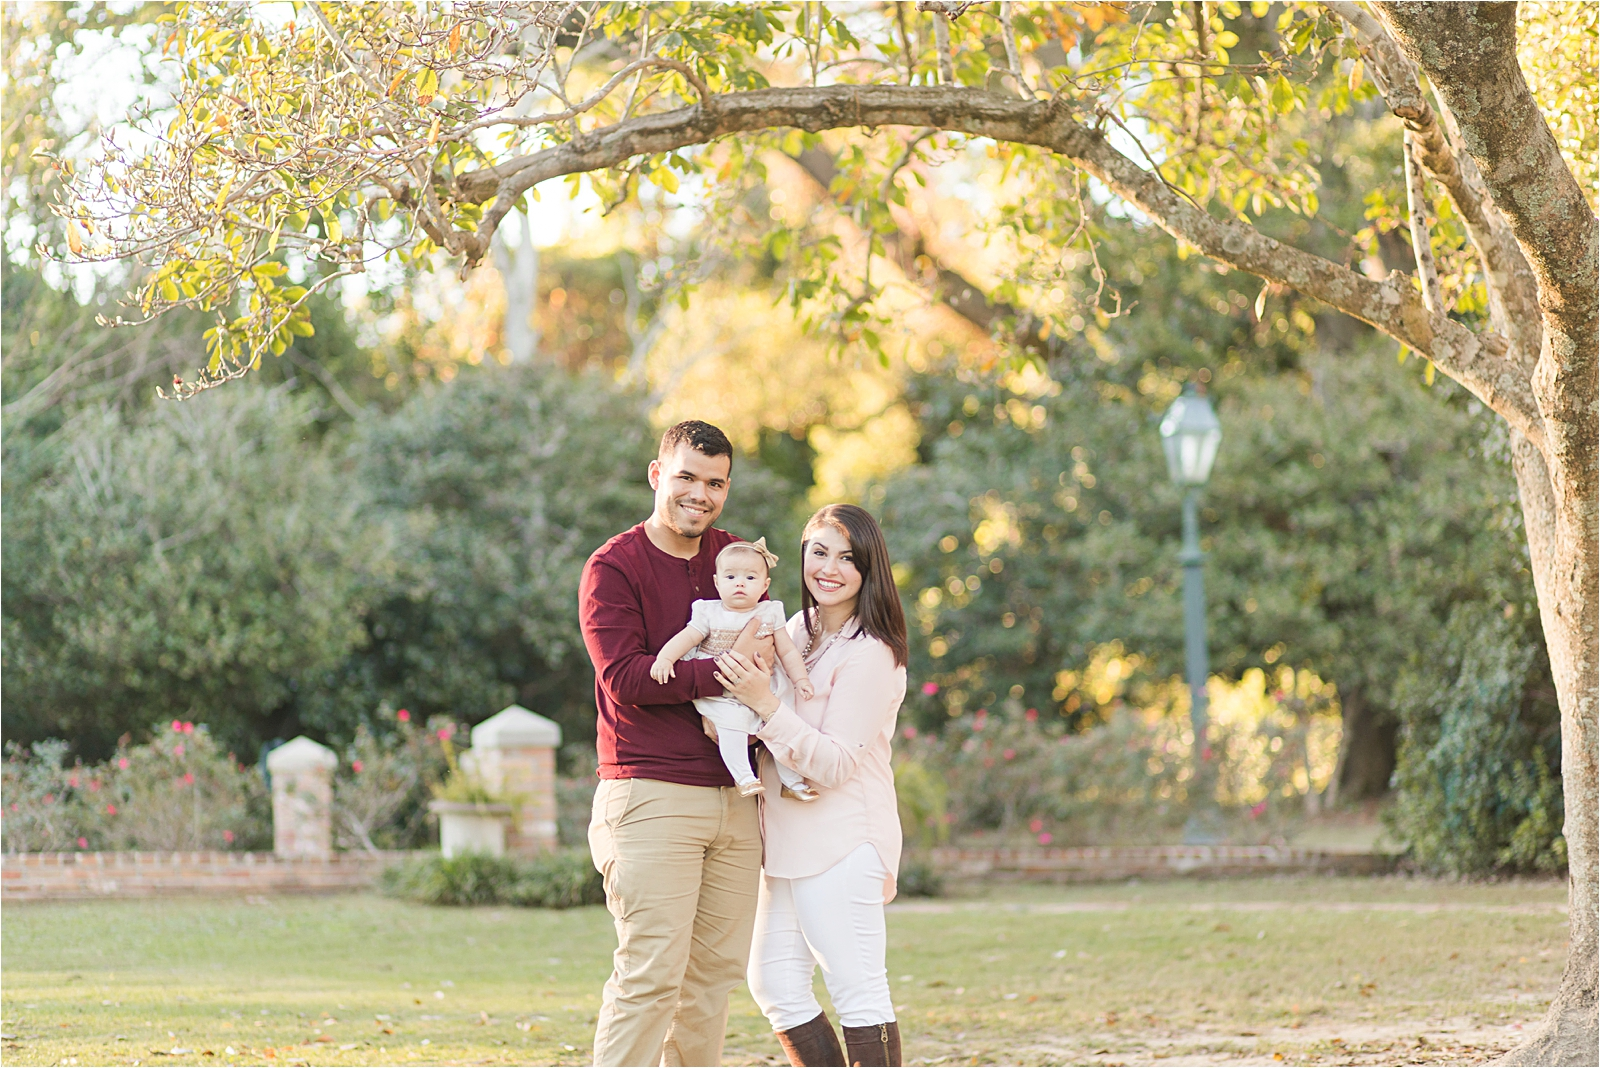 Spring Hill & Mobile Alabama Family Portraits   The Lopez Family